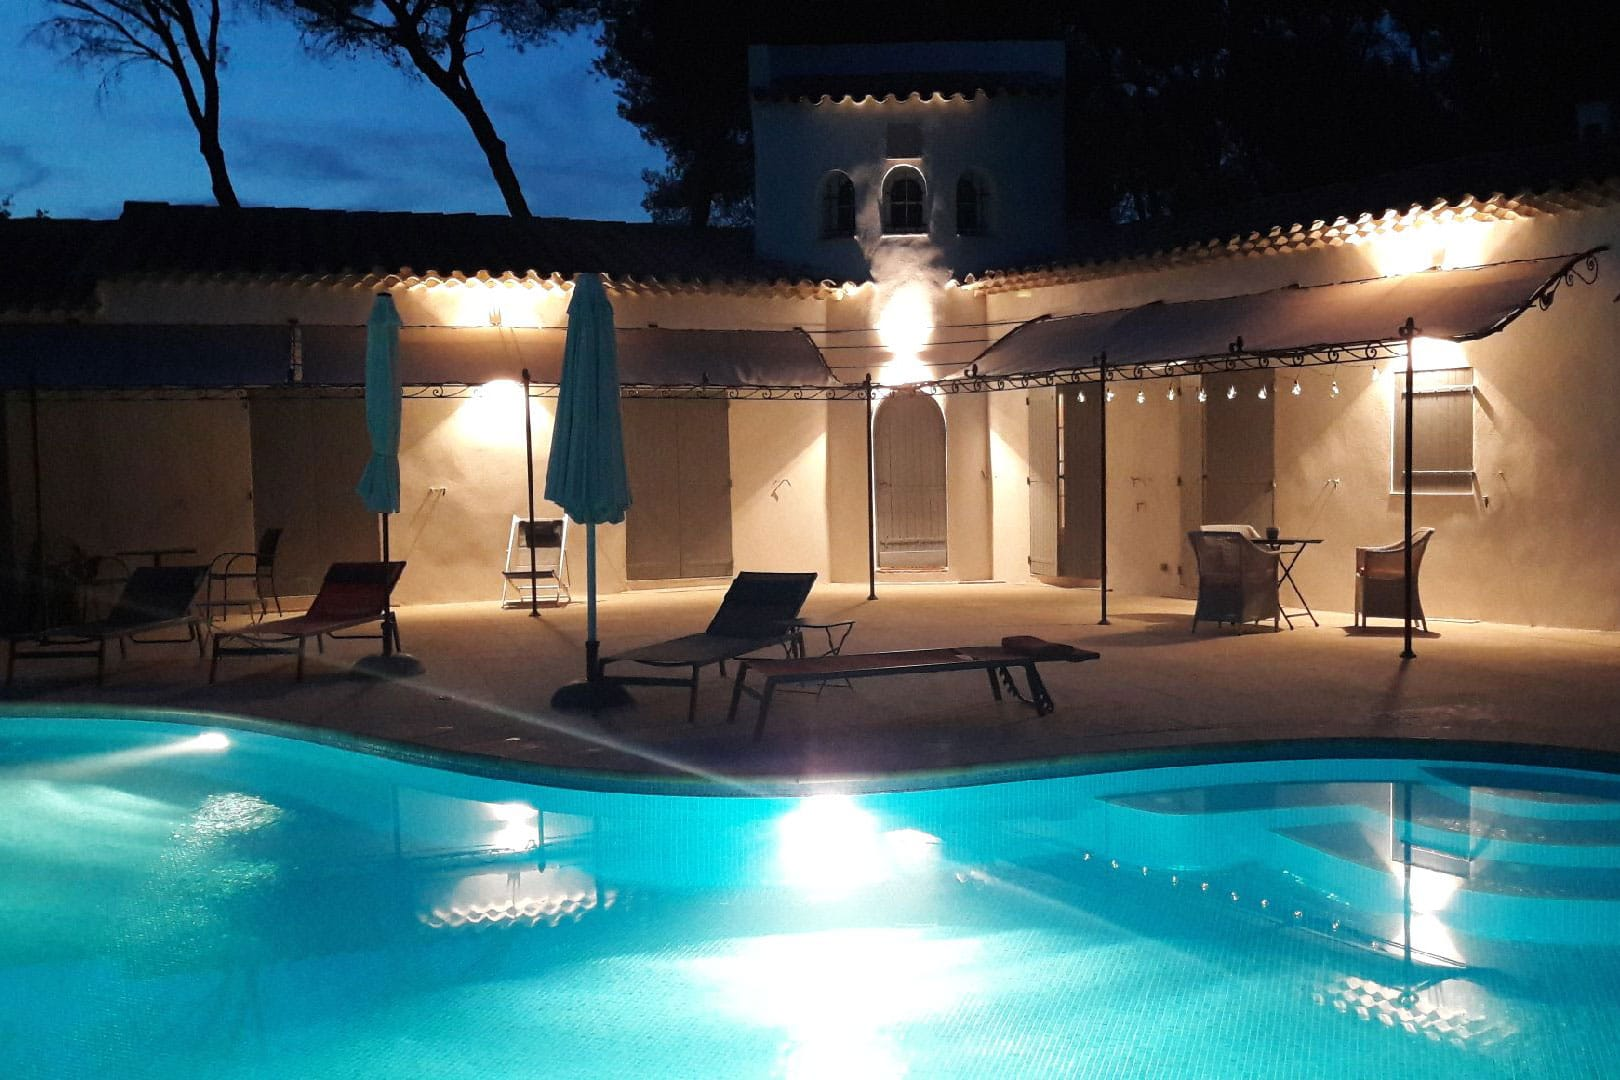 chambres d'hotes le beausset var provence